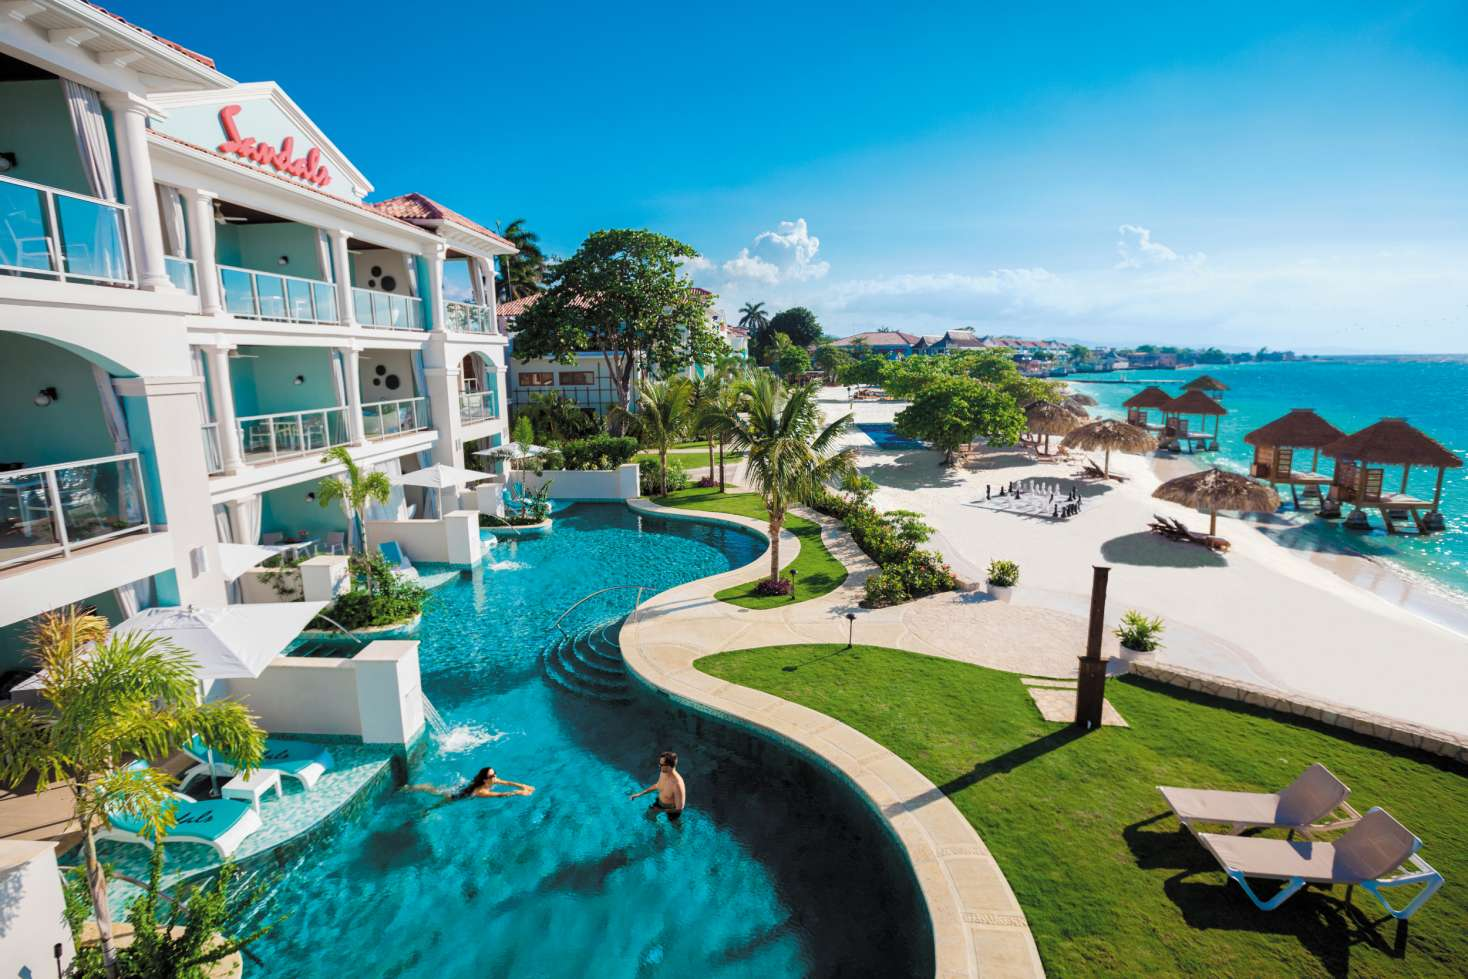 Image of Sandals Montego Bay, Saint James, Jamaica